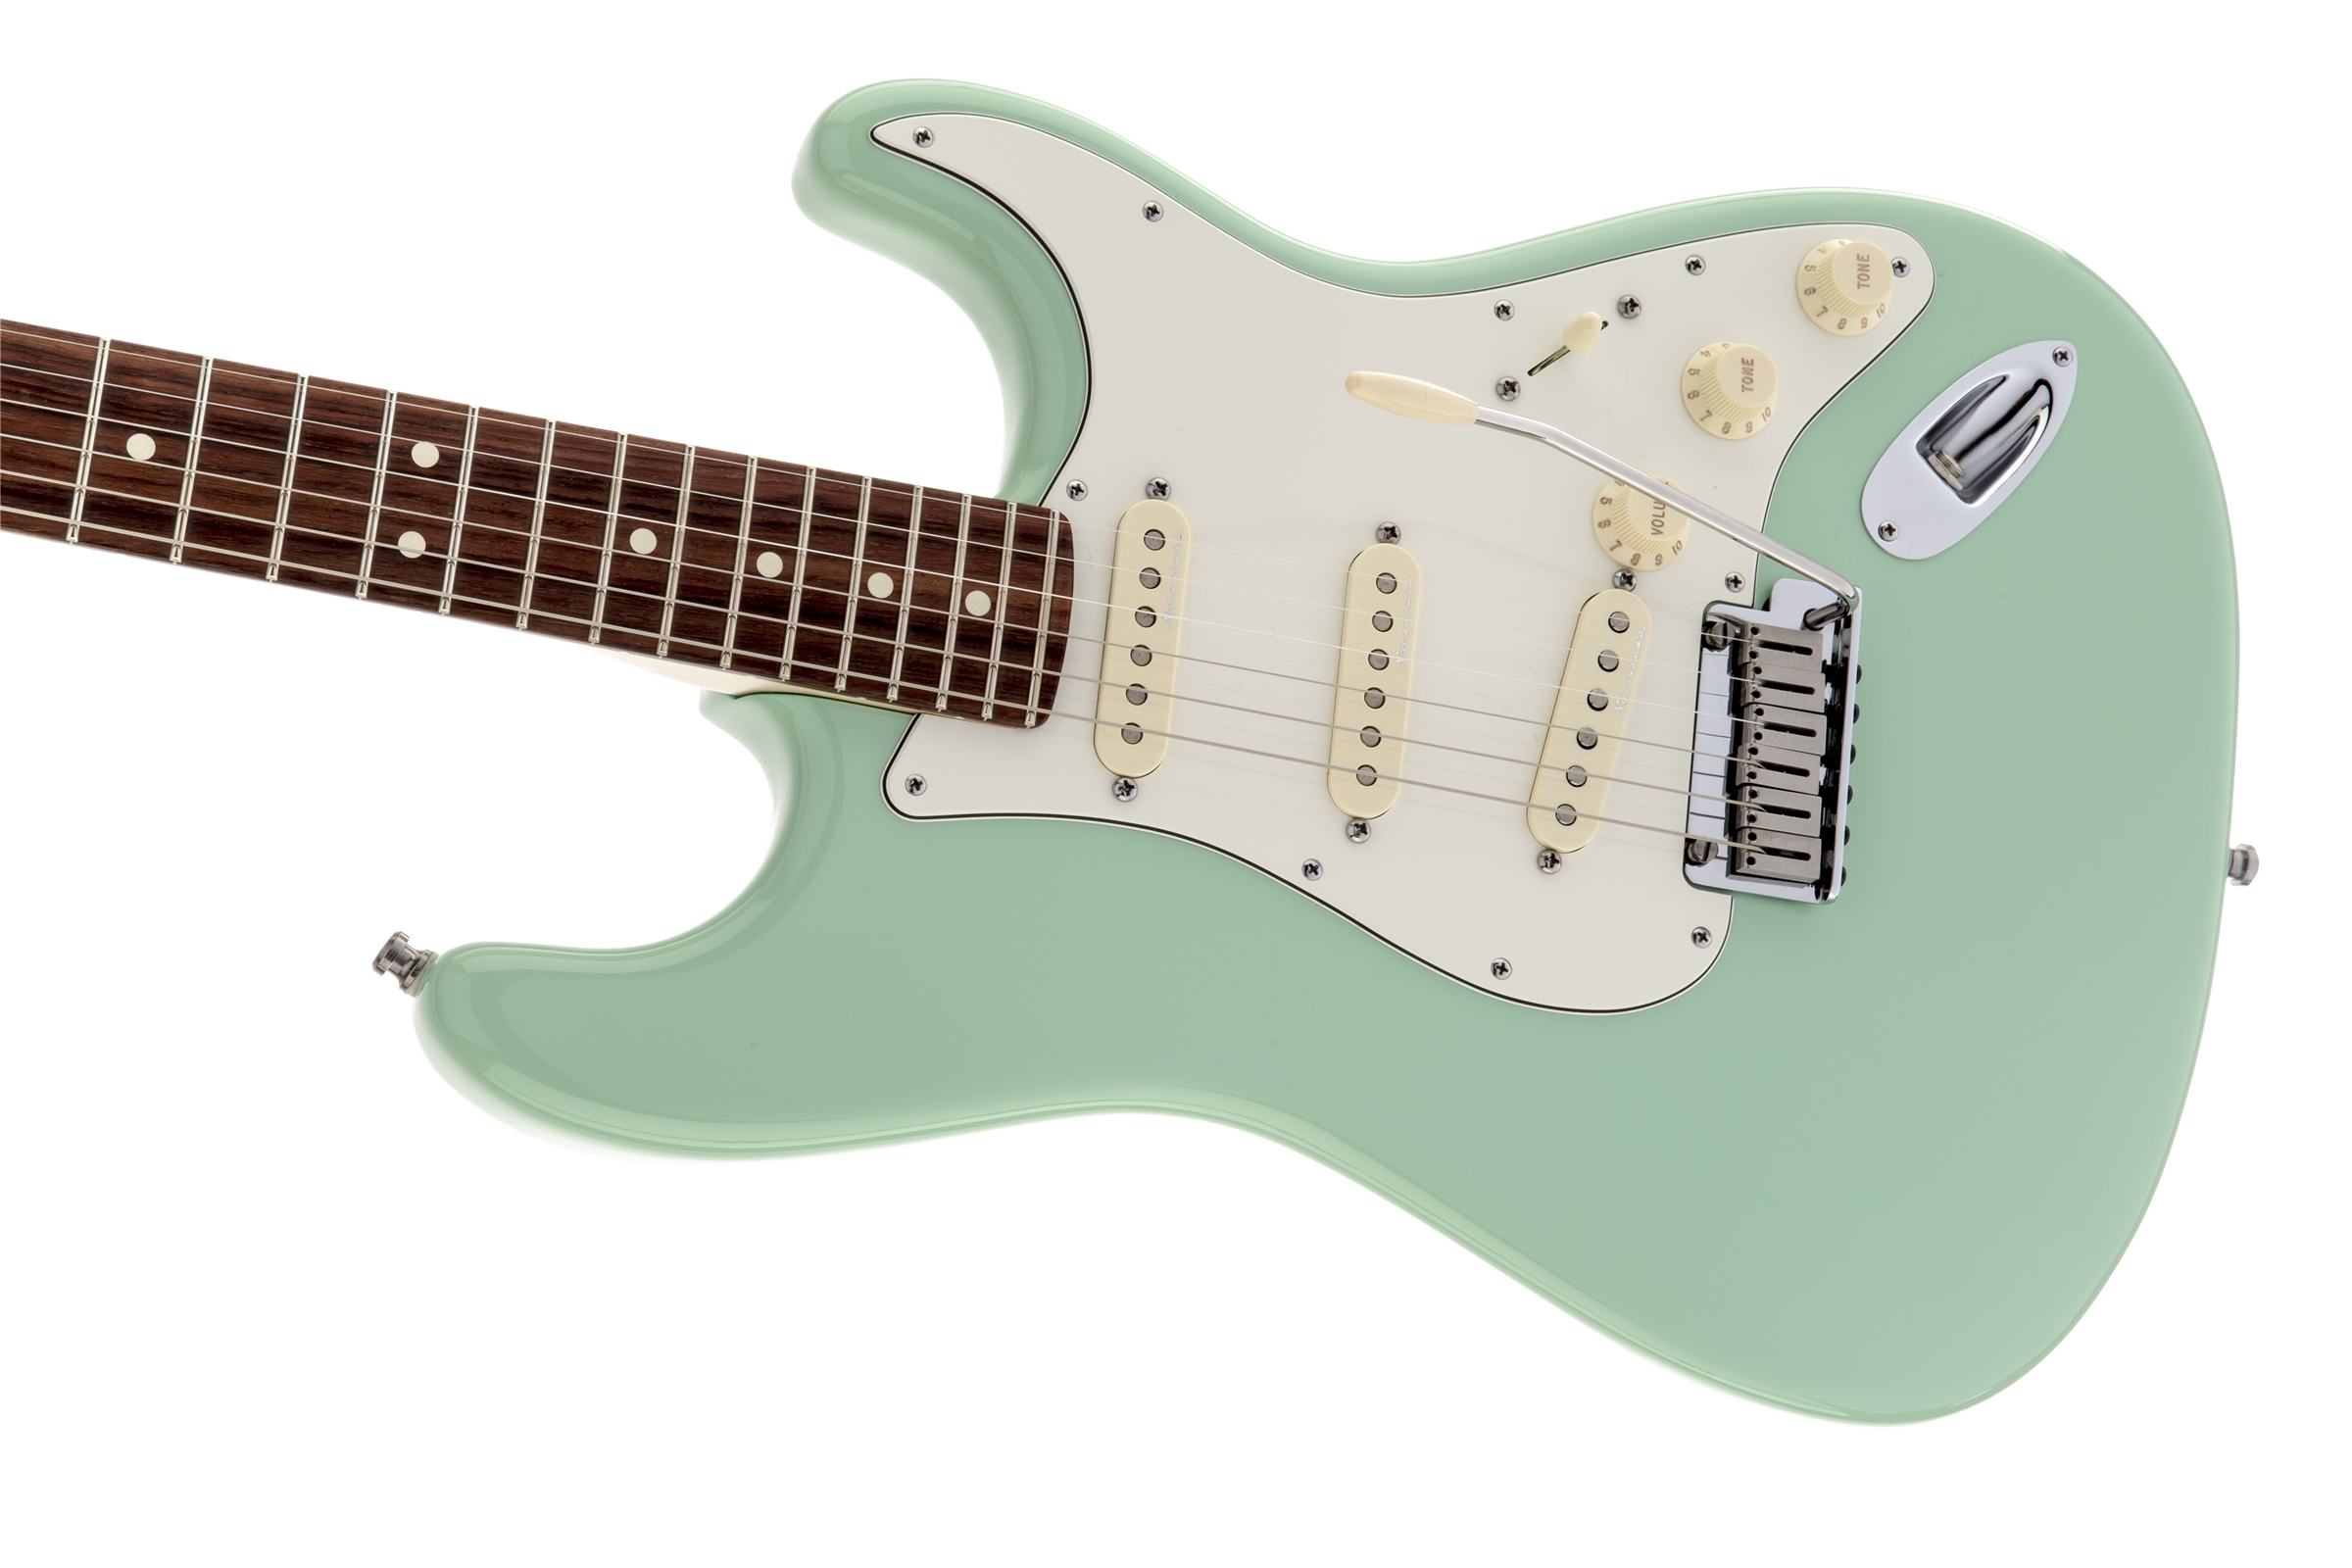 Surf green fender amp dating